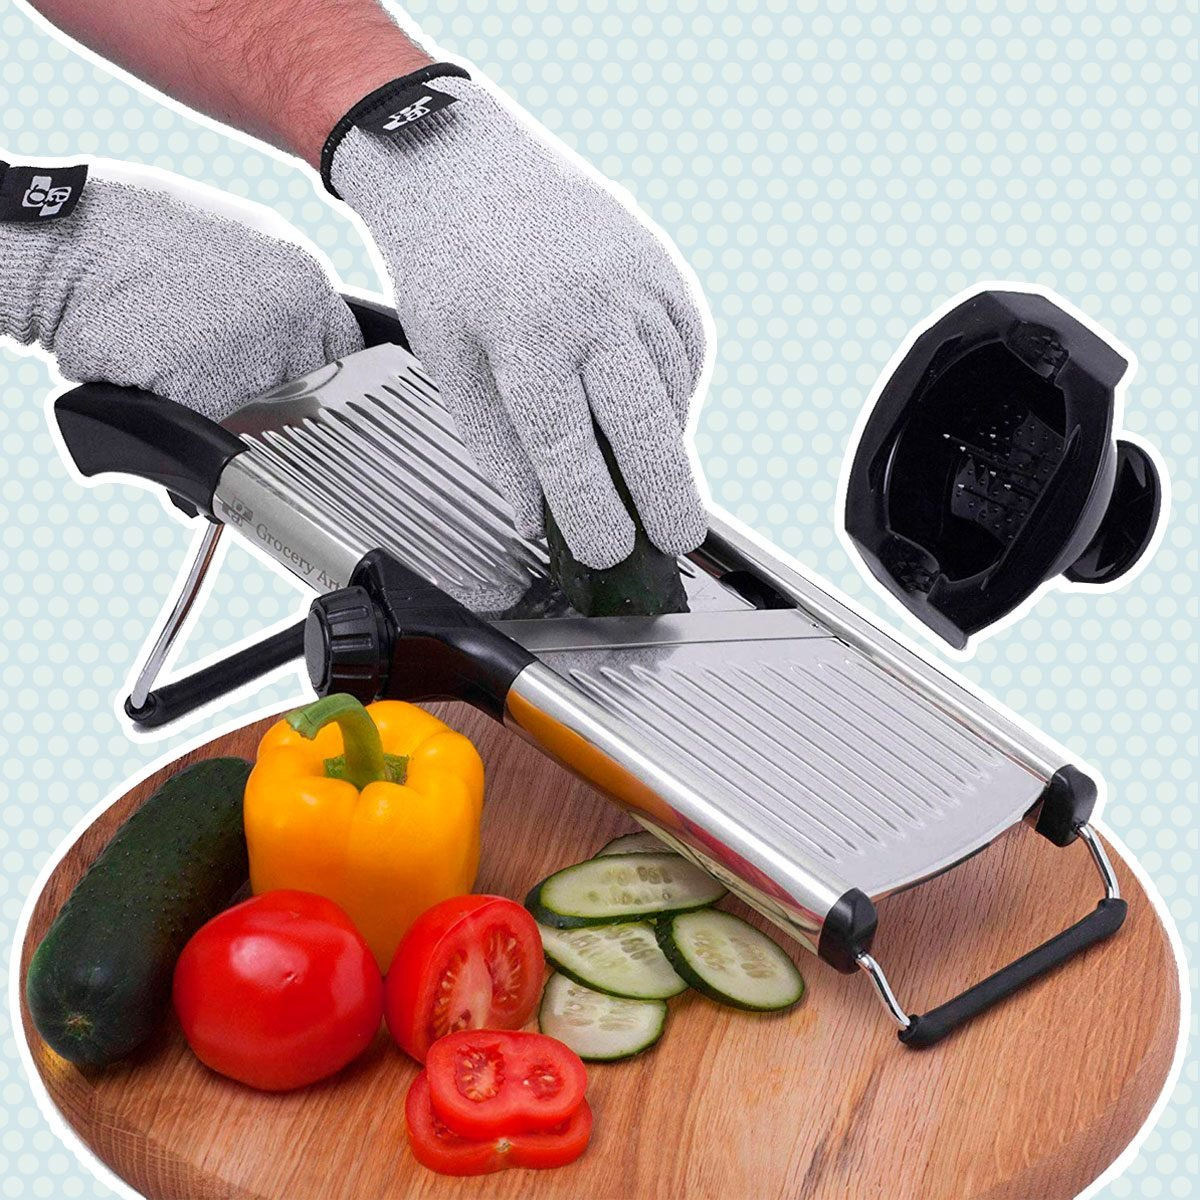 Mandoline Slicer with Cut-Resistant Gloves and Blade Guard